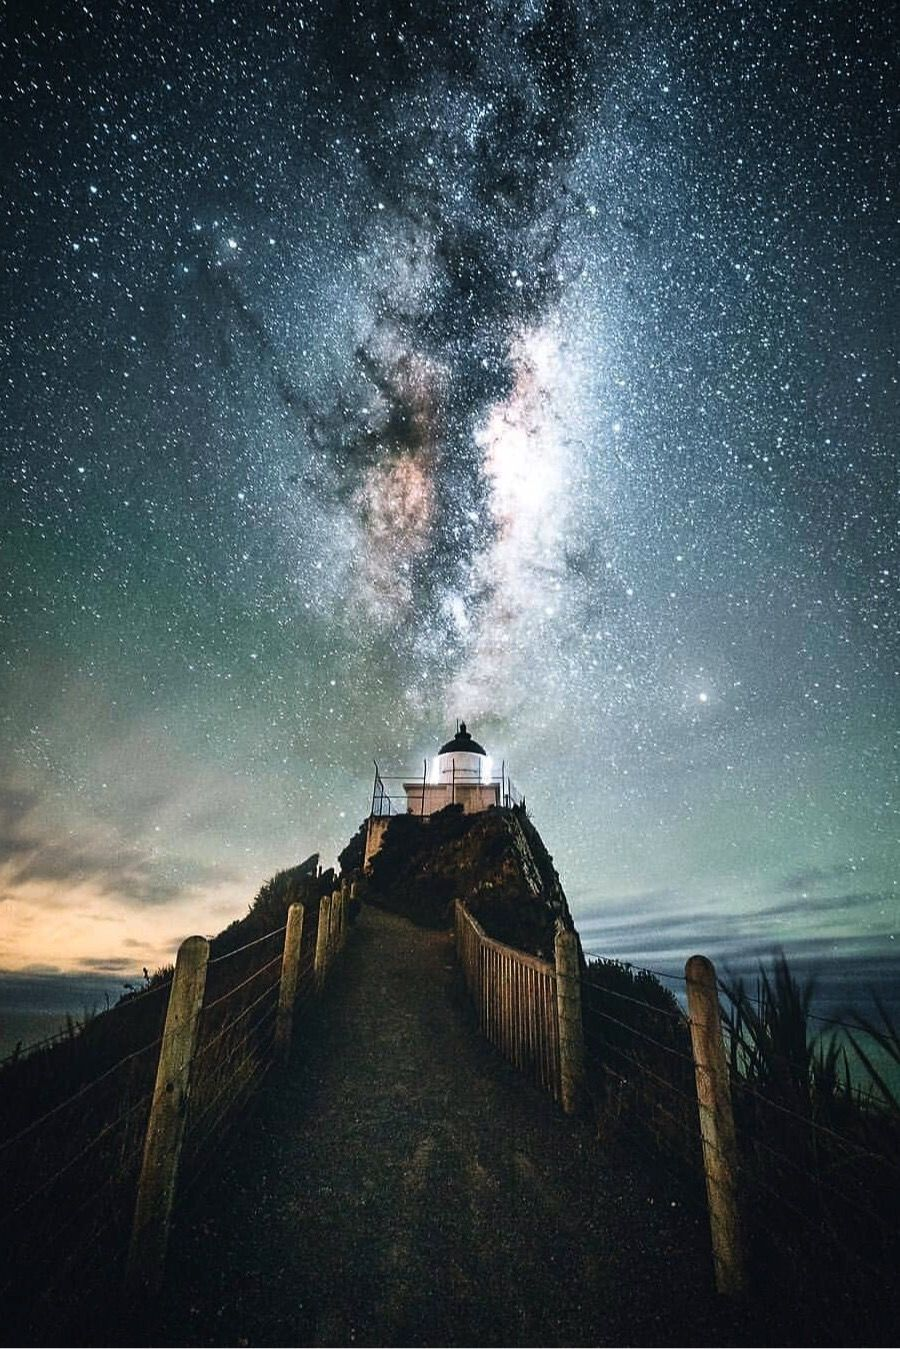 #Magical lighthouse at night. ~ETS | Milky way photography ...